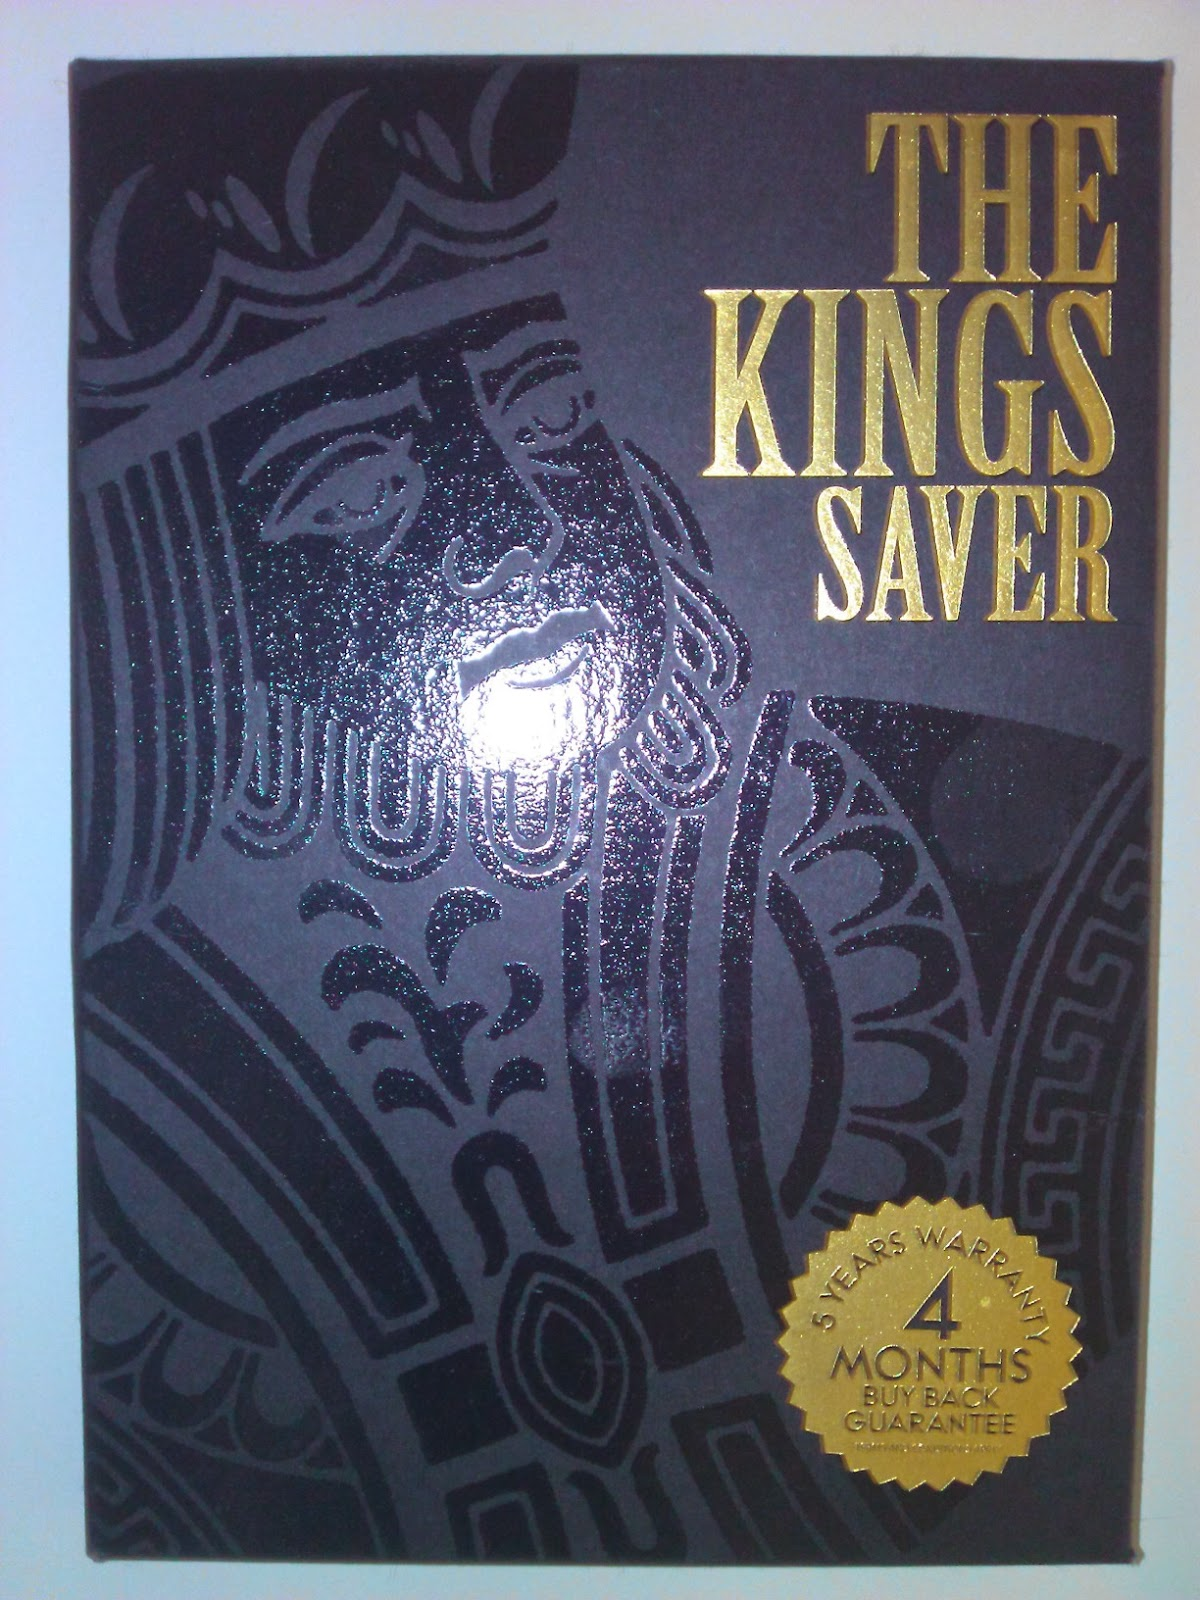 King Energy Savers The Kings Saver Electricity